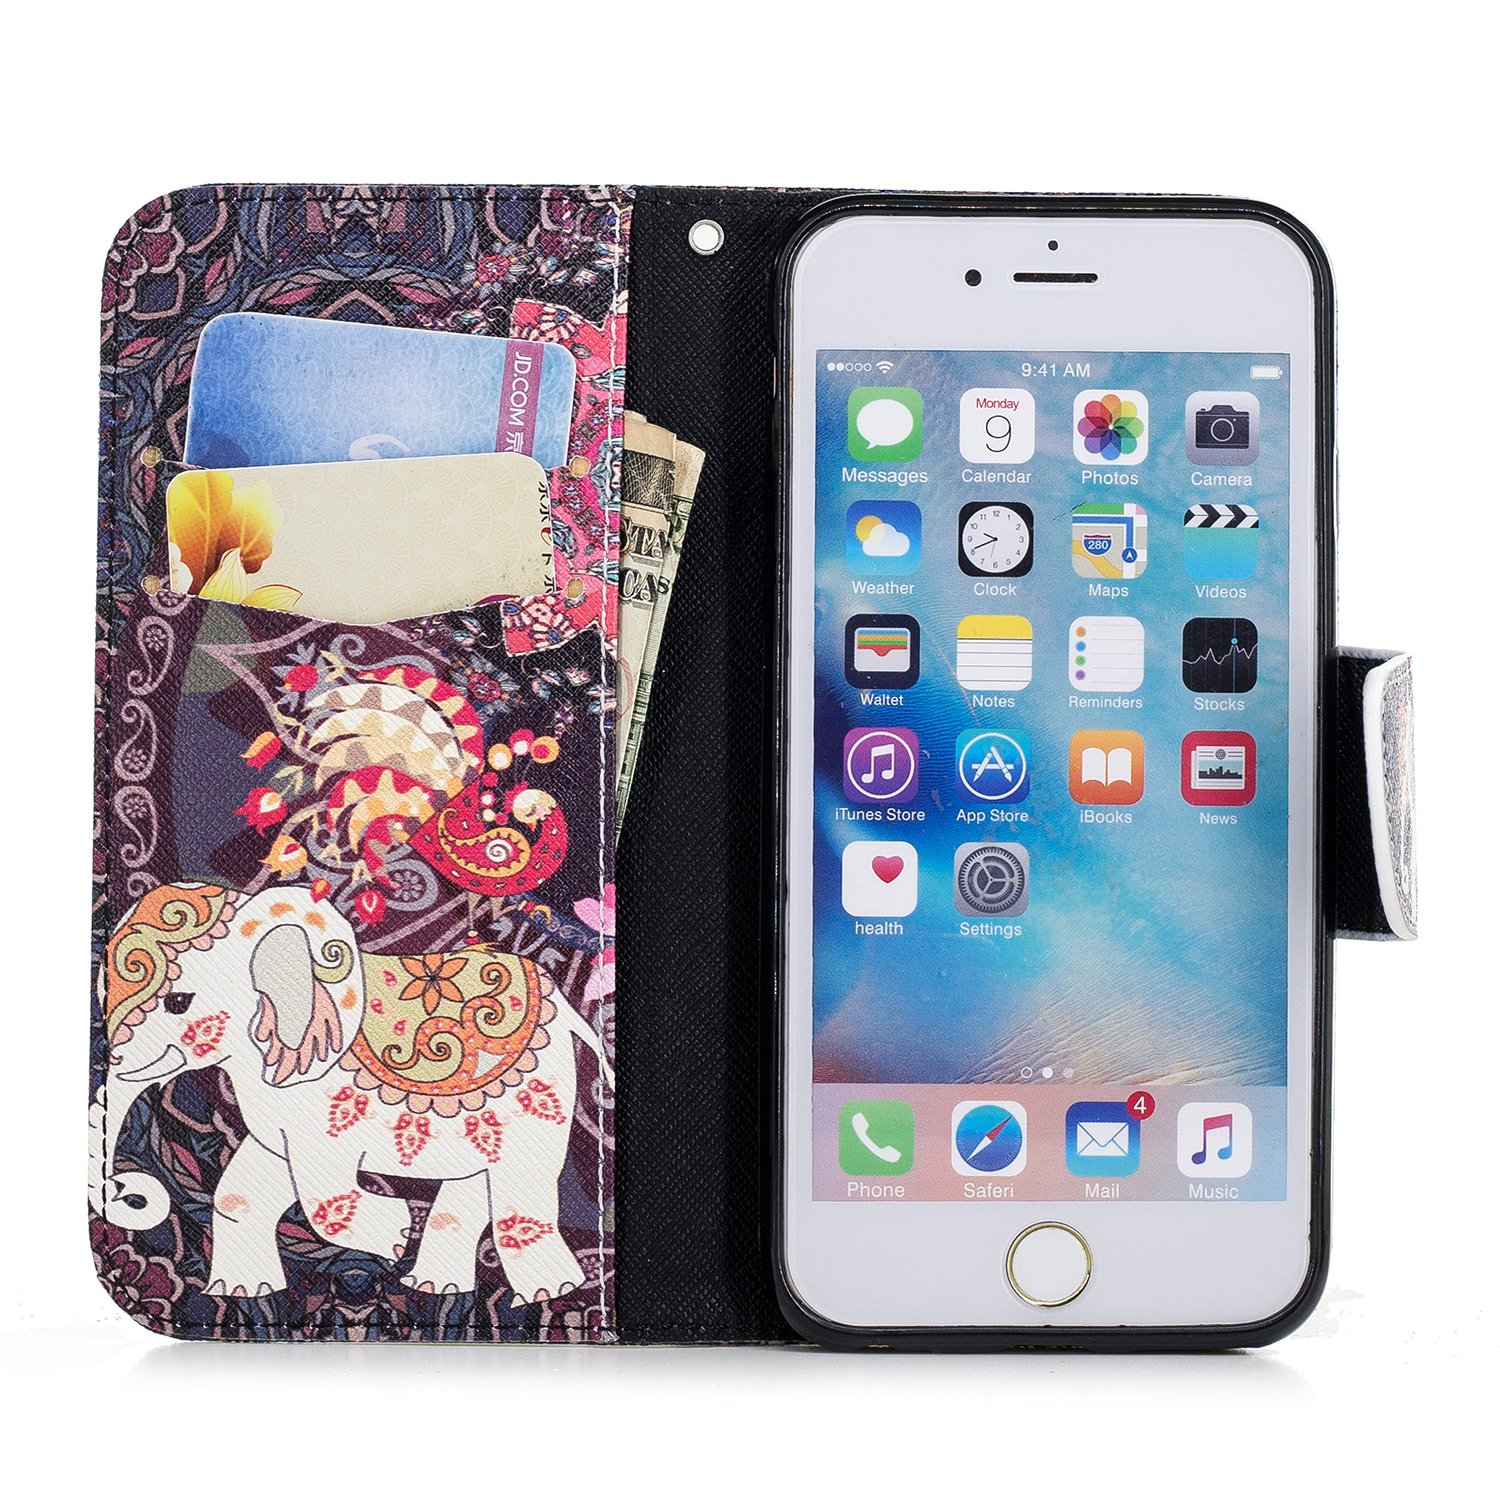 7dbea13ab768 Coque pour iPhone 6  6S, Etui Housse de Protection iPhone 6  6S ...